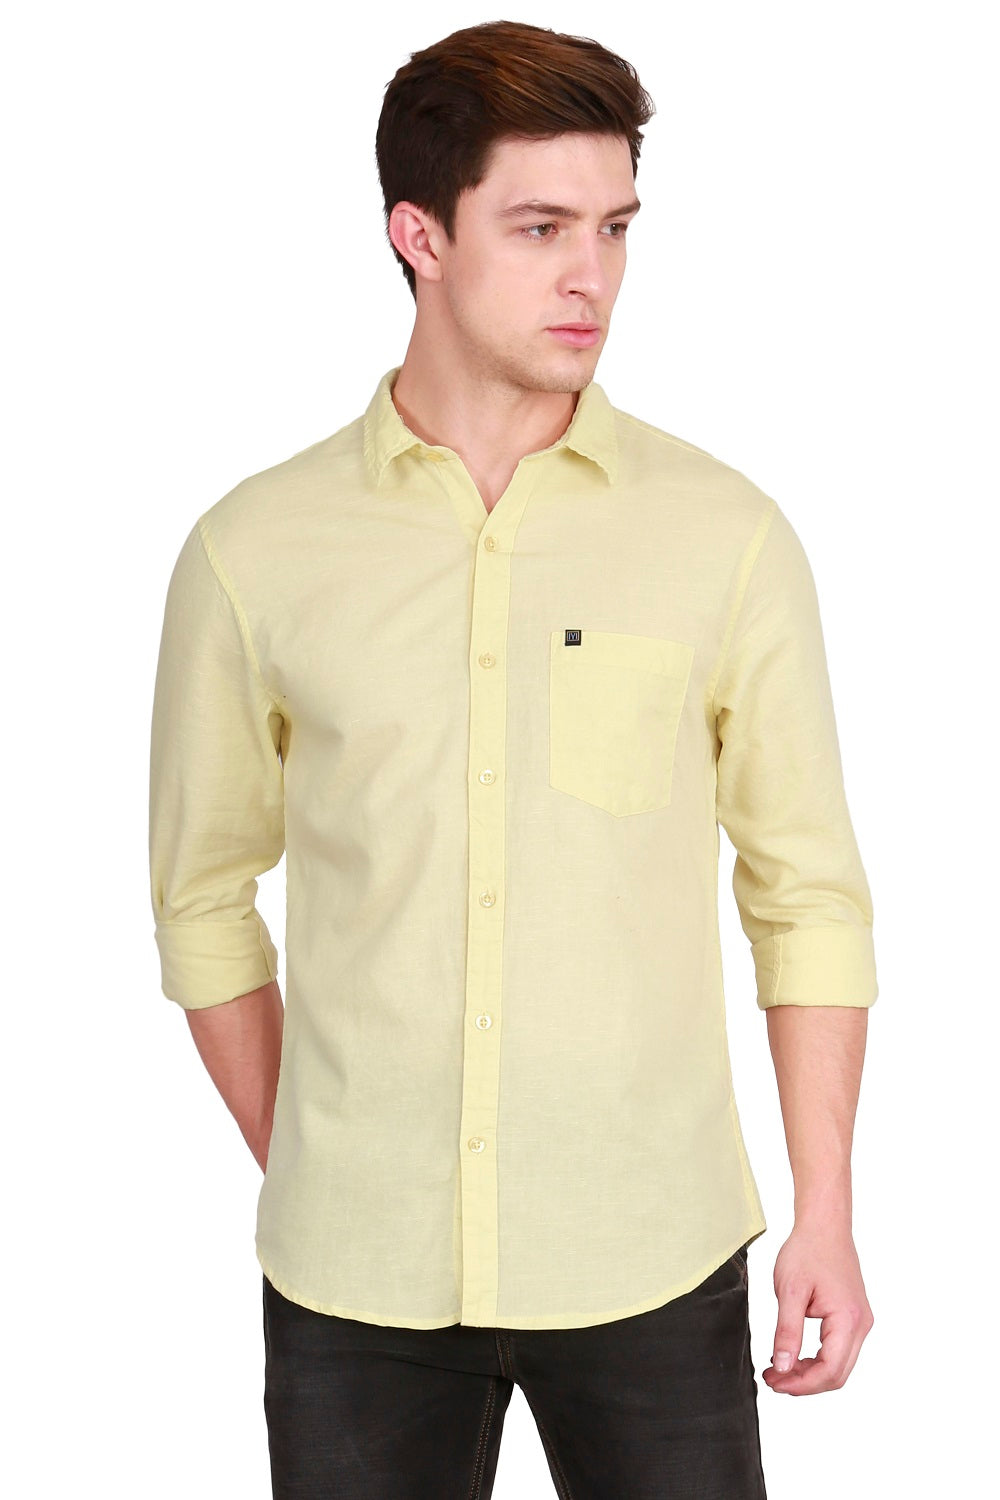 IMYOUNG Men's Solid Yellow Cotton Linen Casual Shirt